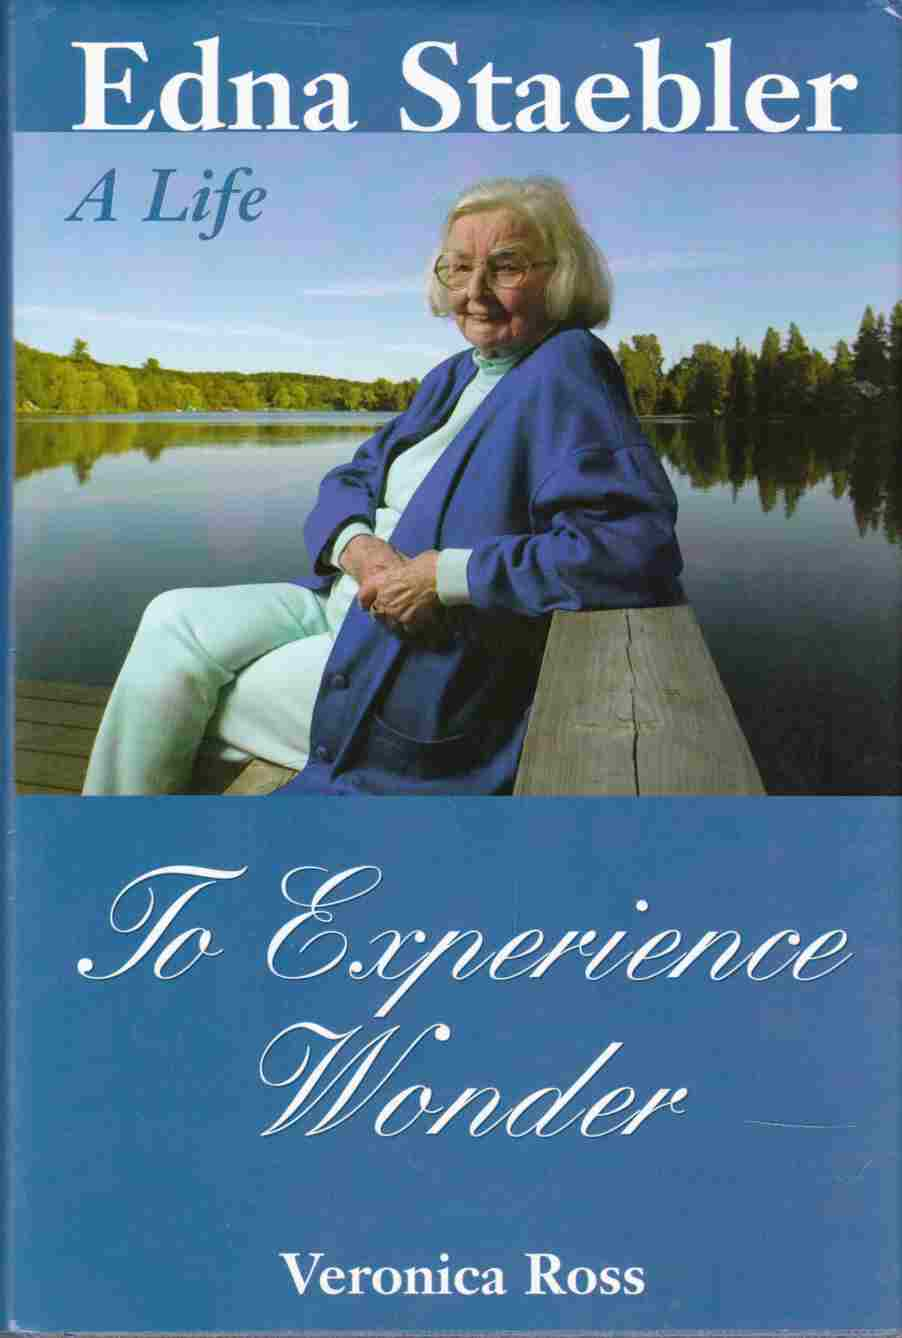 Image for To Experience Wonder Edna Staebler, a Life